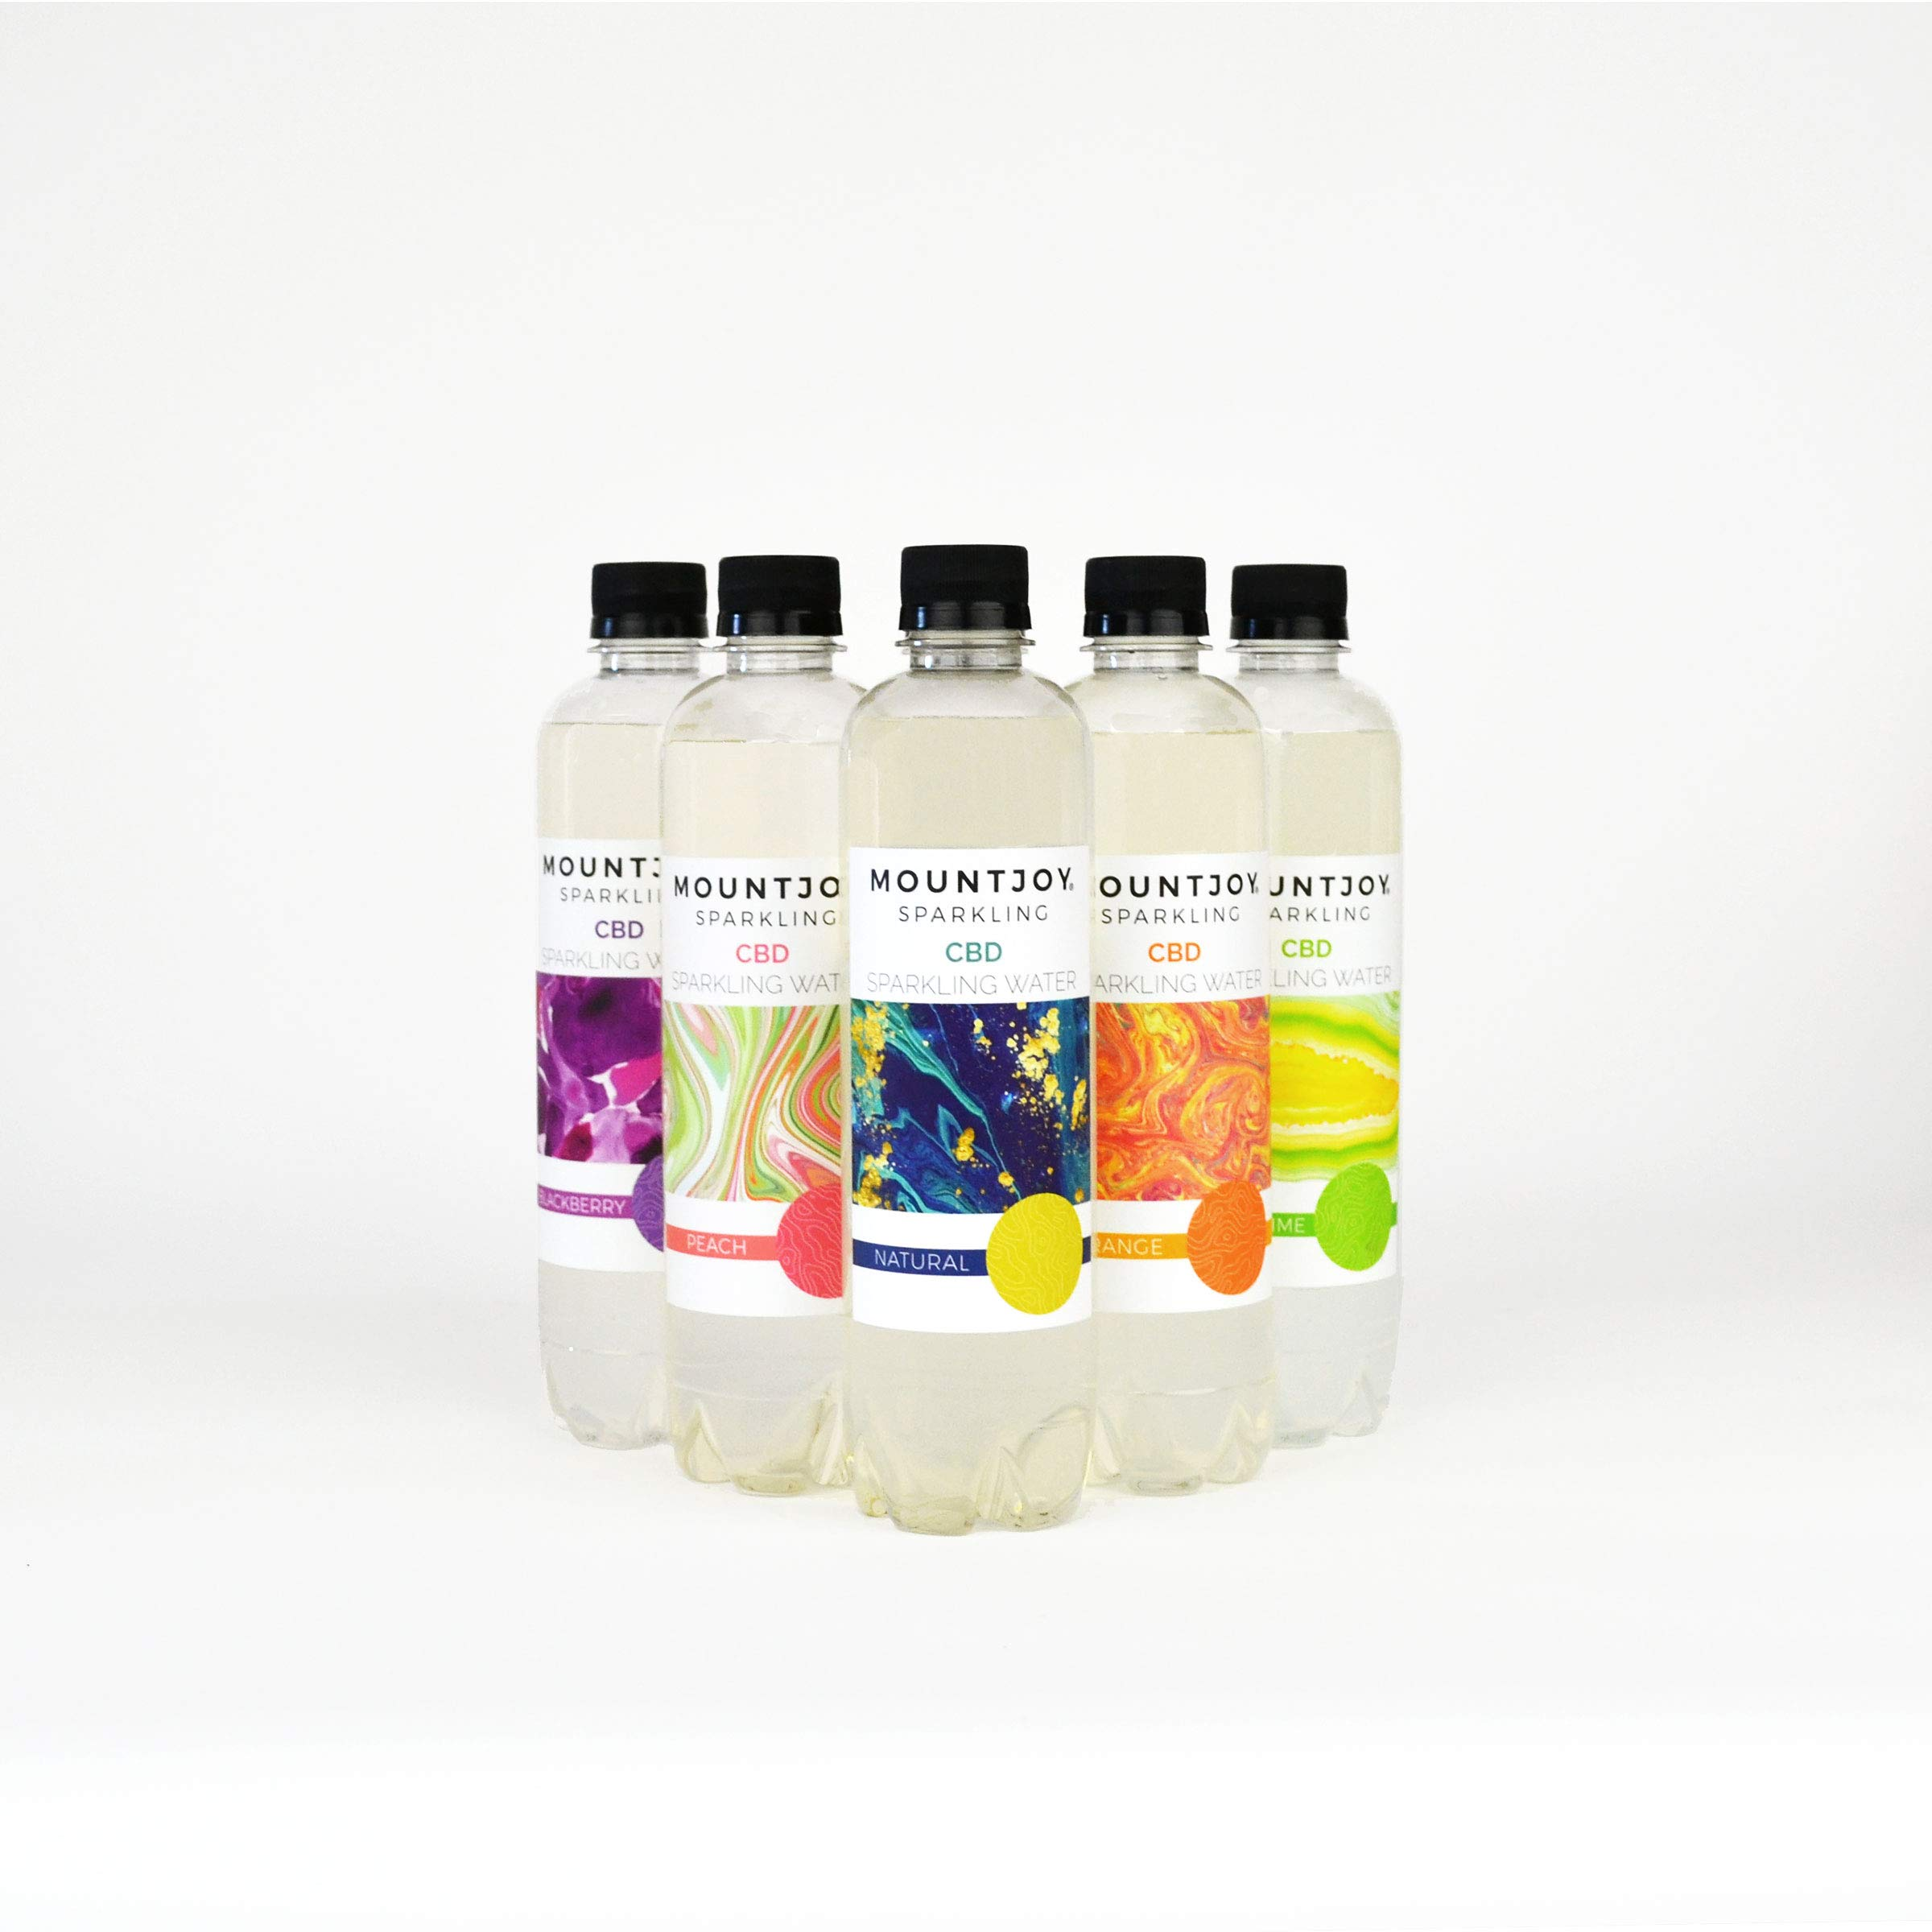 Mountjoy Sparkling CEE-BEE-DEE Assorted Flavors - 16 oz - 6 Pack by Mountjoy Sparkling